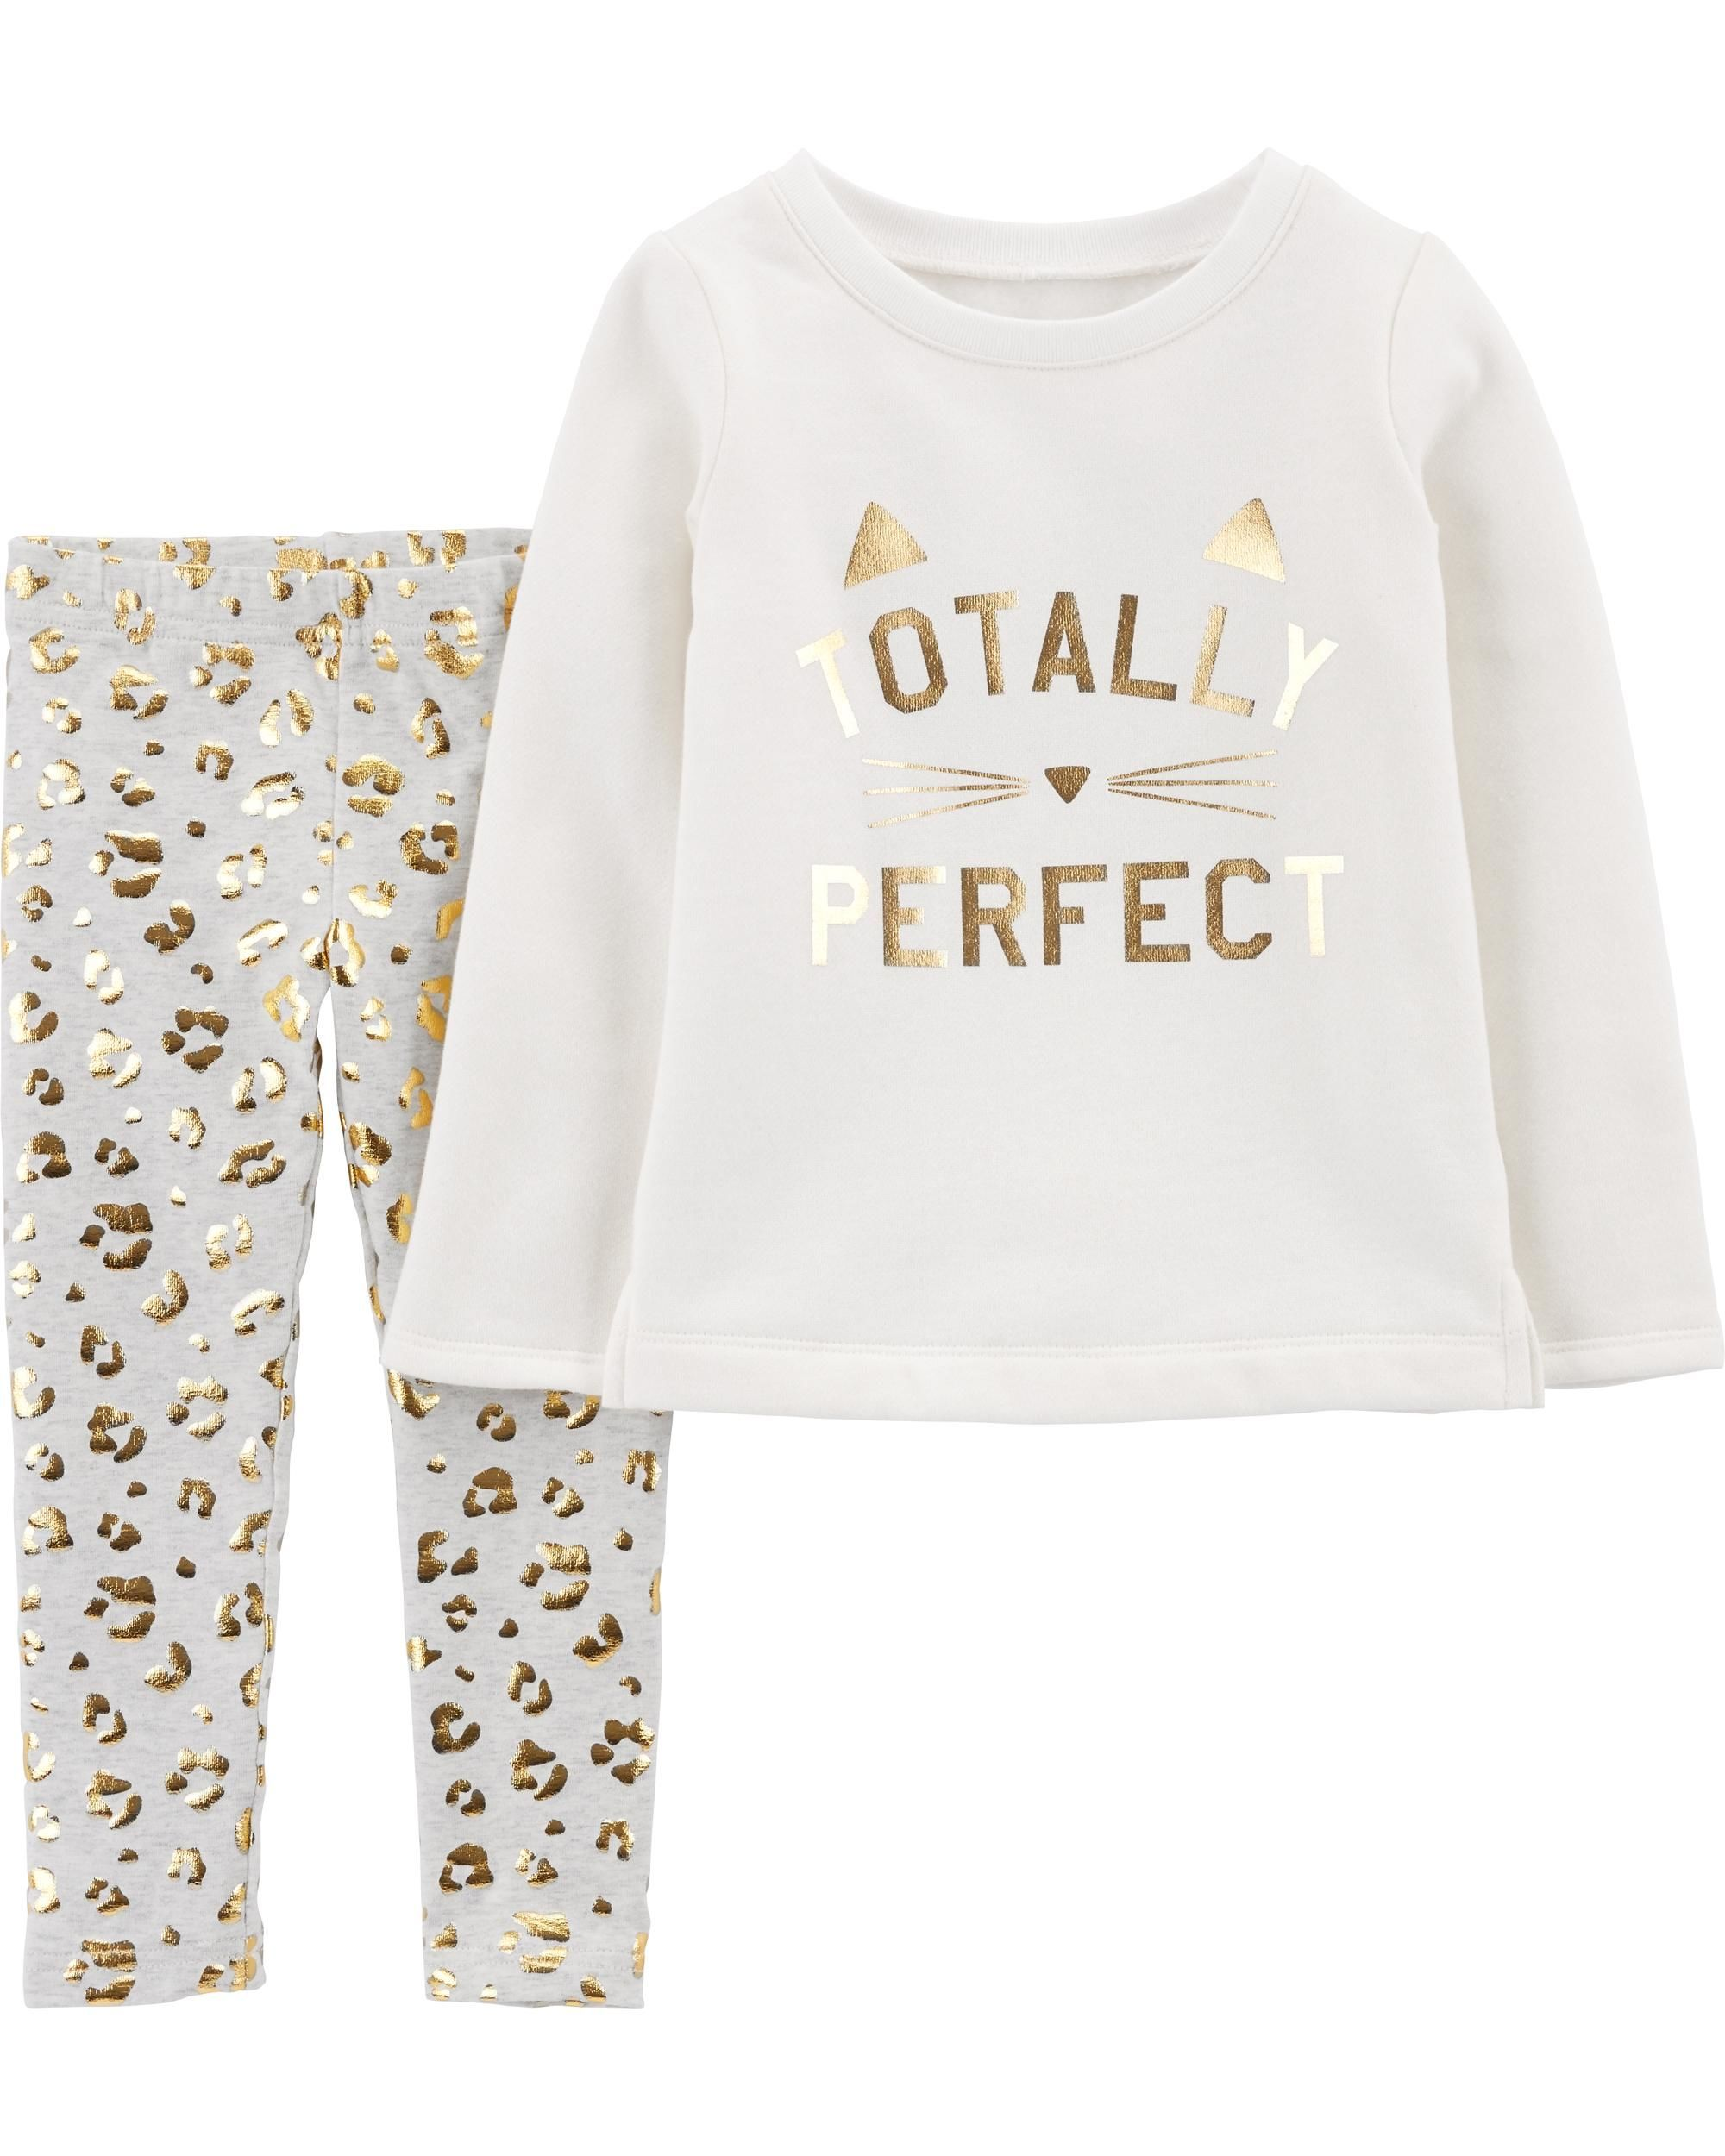 c9f73fd9a1727 2-Piece Cat Fleece Top & Leopard Legging Set | Baby 2019 | Carters ...